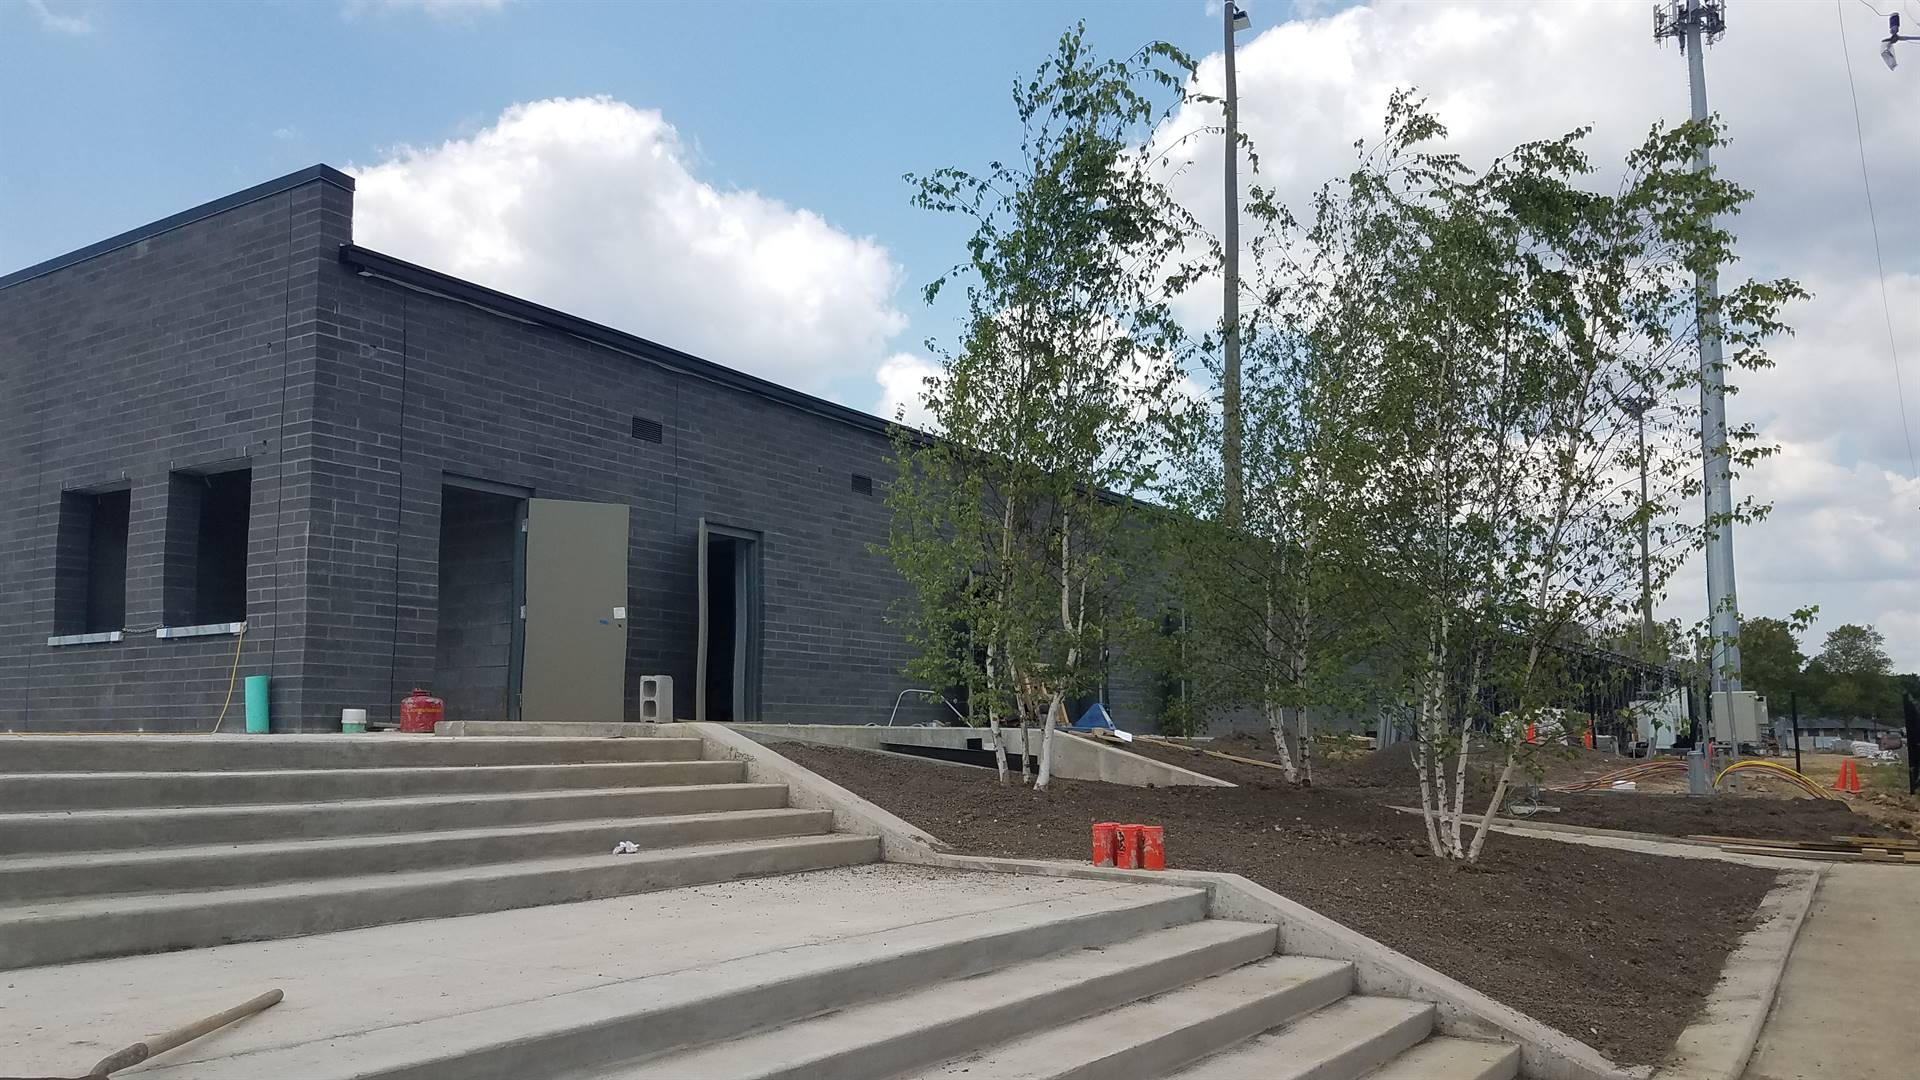 New visitor concessions building and entrance off Mount Holyoke, July 2019